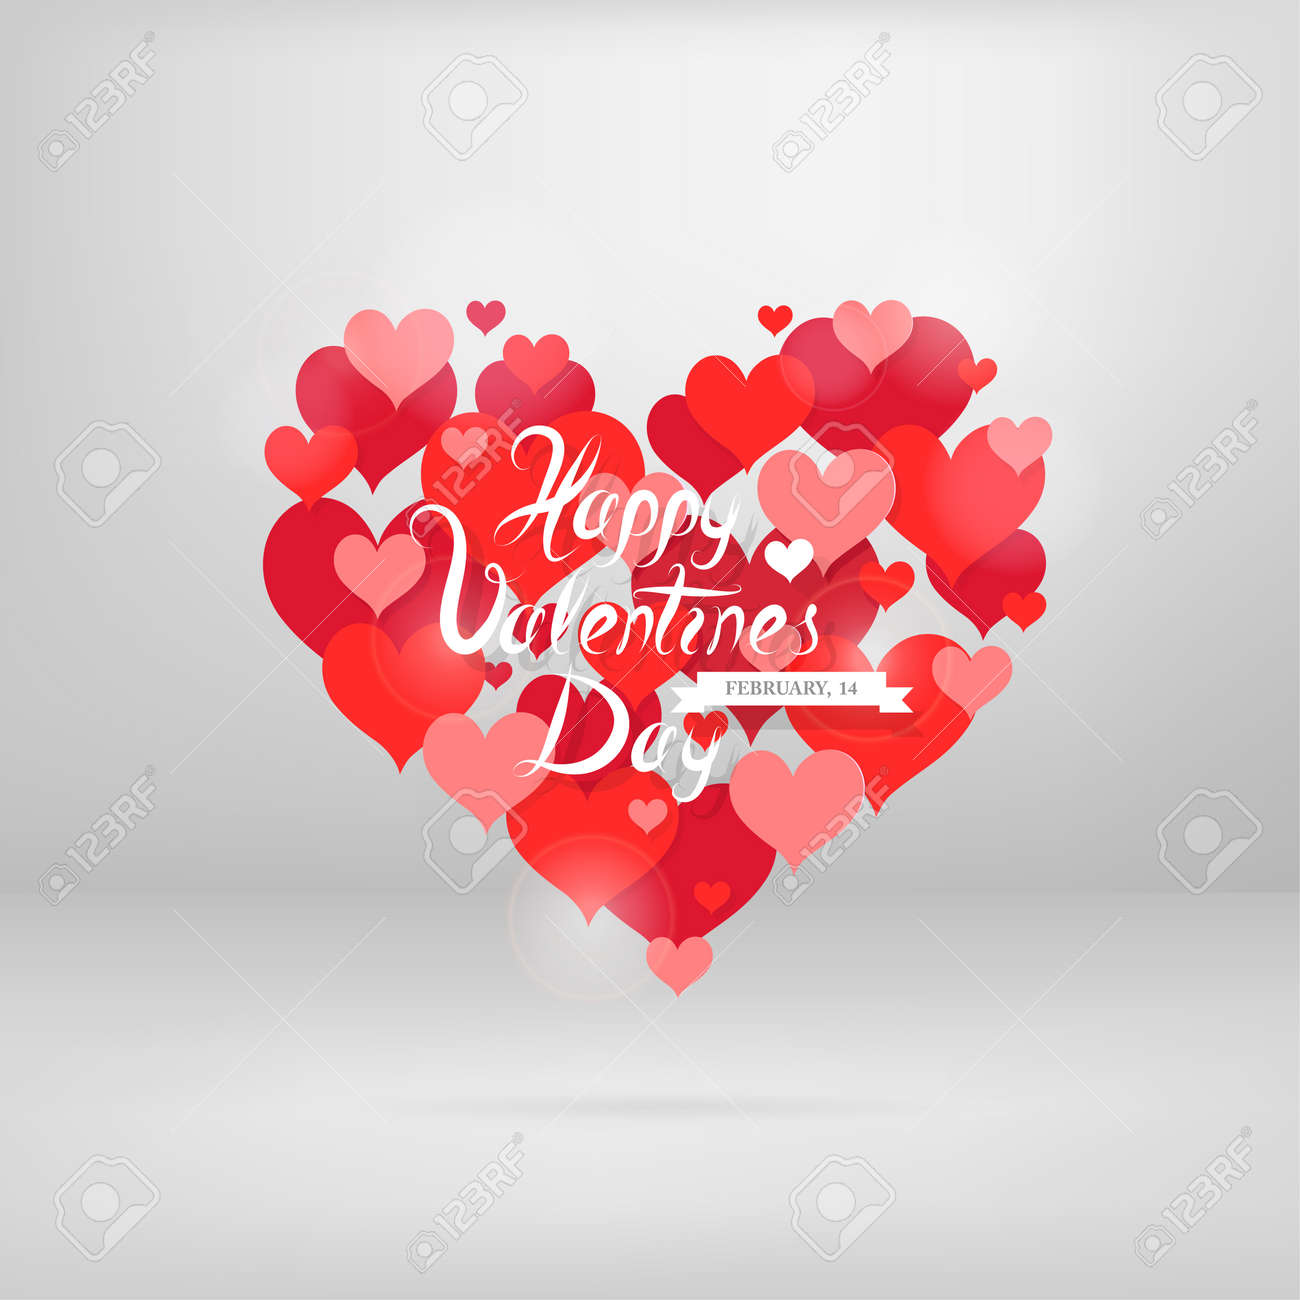 Heart shape shaped from planty of hearts st valentines greeting heart shape shaped from planty of hearts st valentines greeting card design eps m4hsunfo